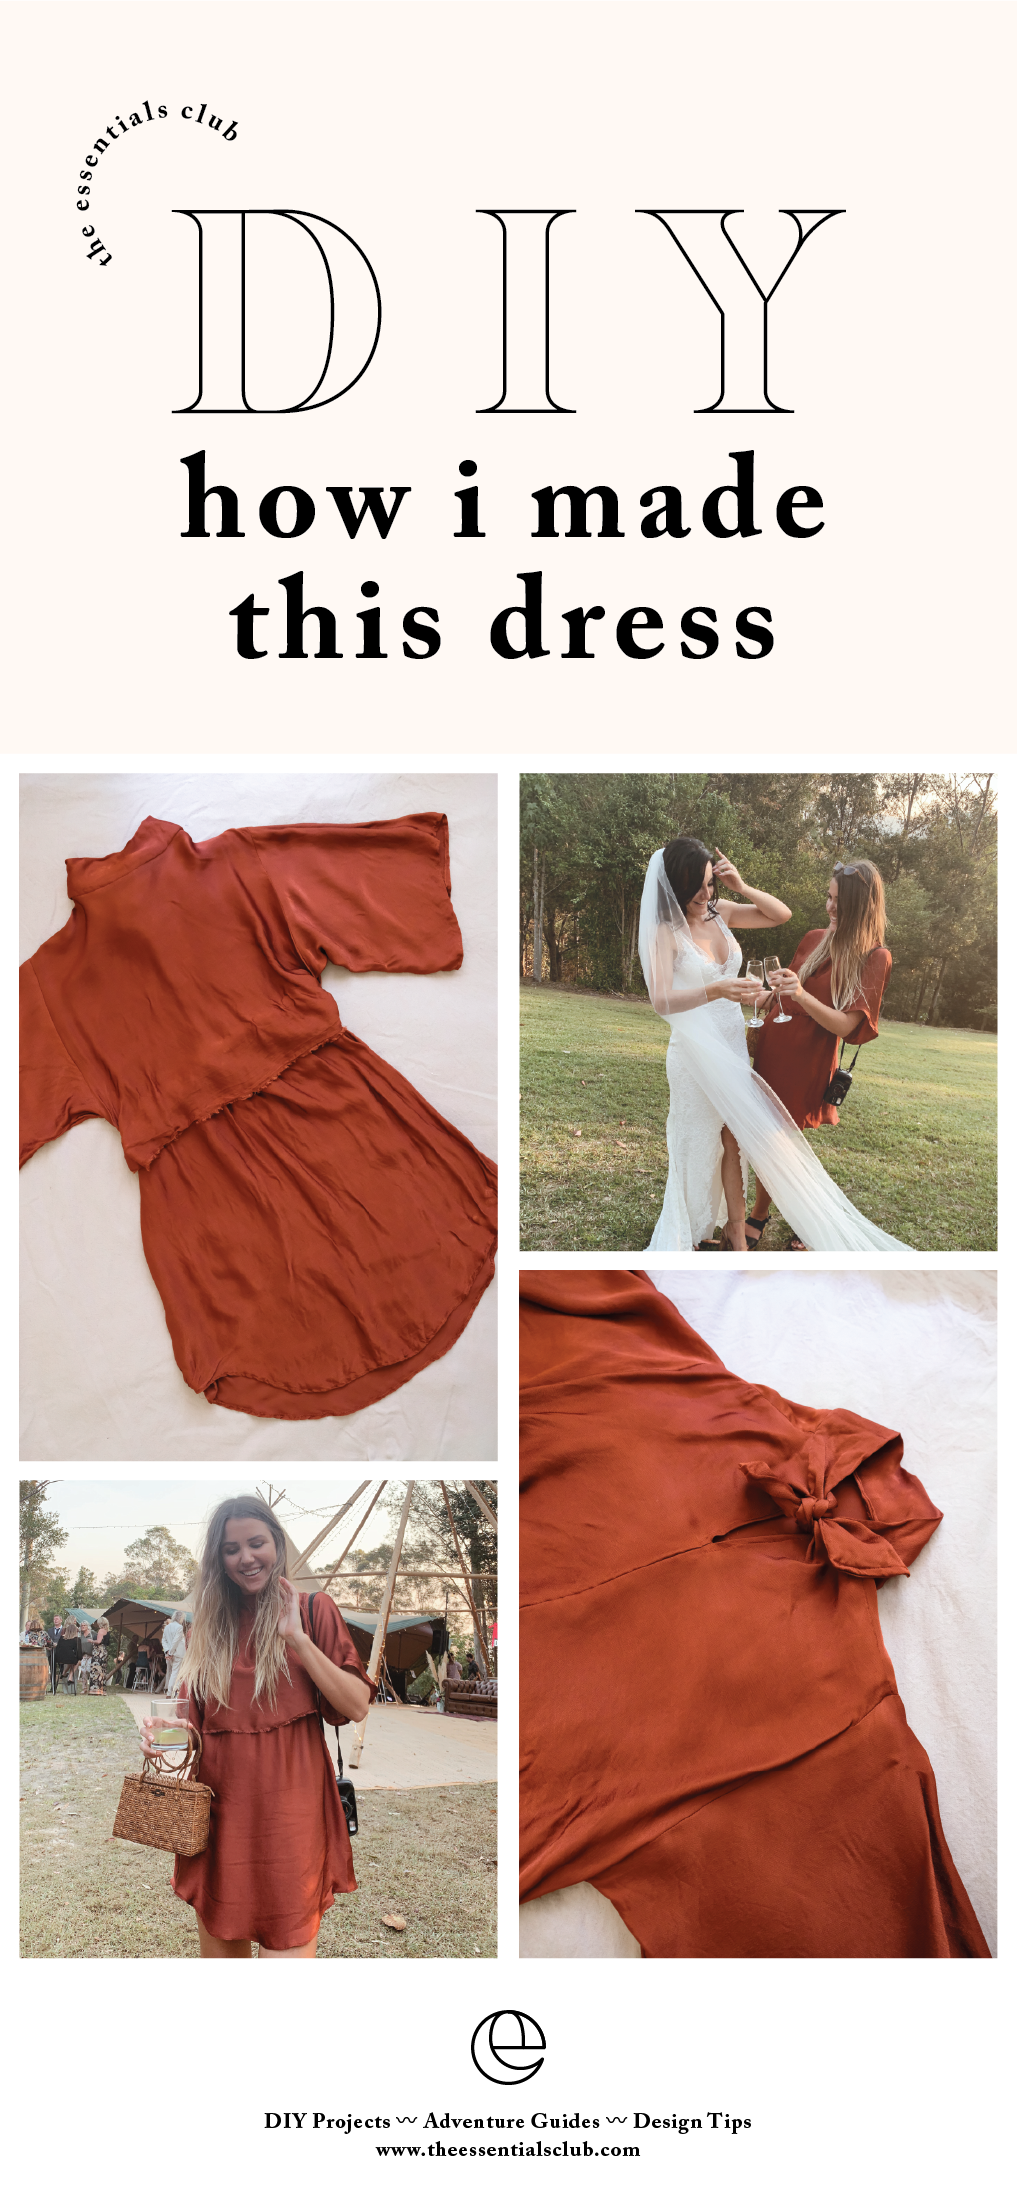 DIY: How I made this dress